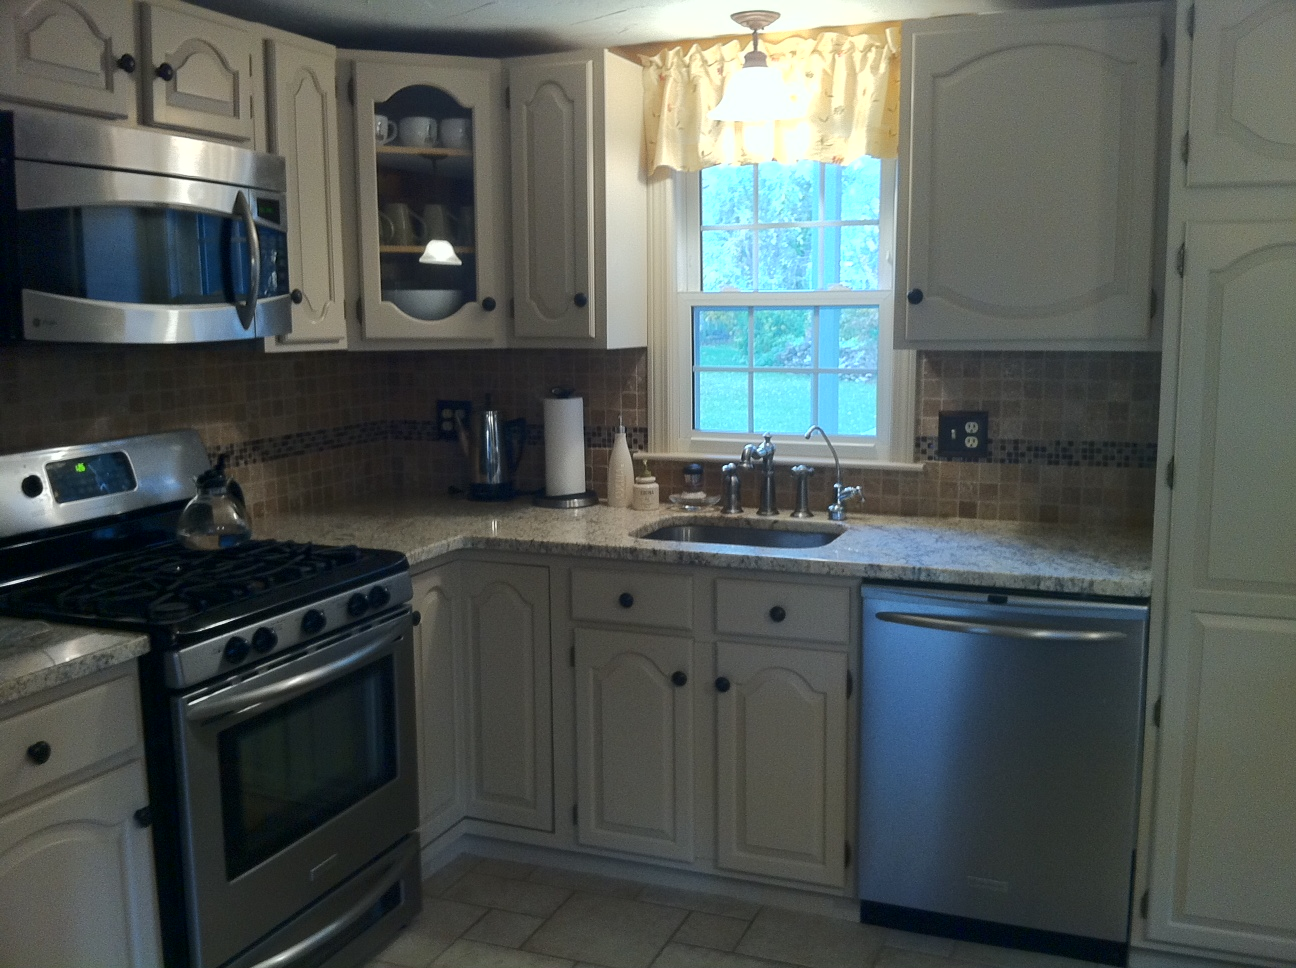 Kitchen Cabinet Remodeling In North Smithfield Rhode Island